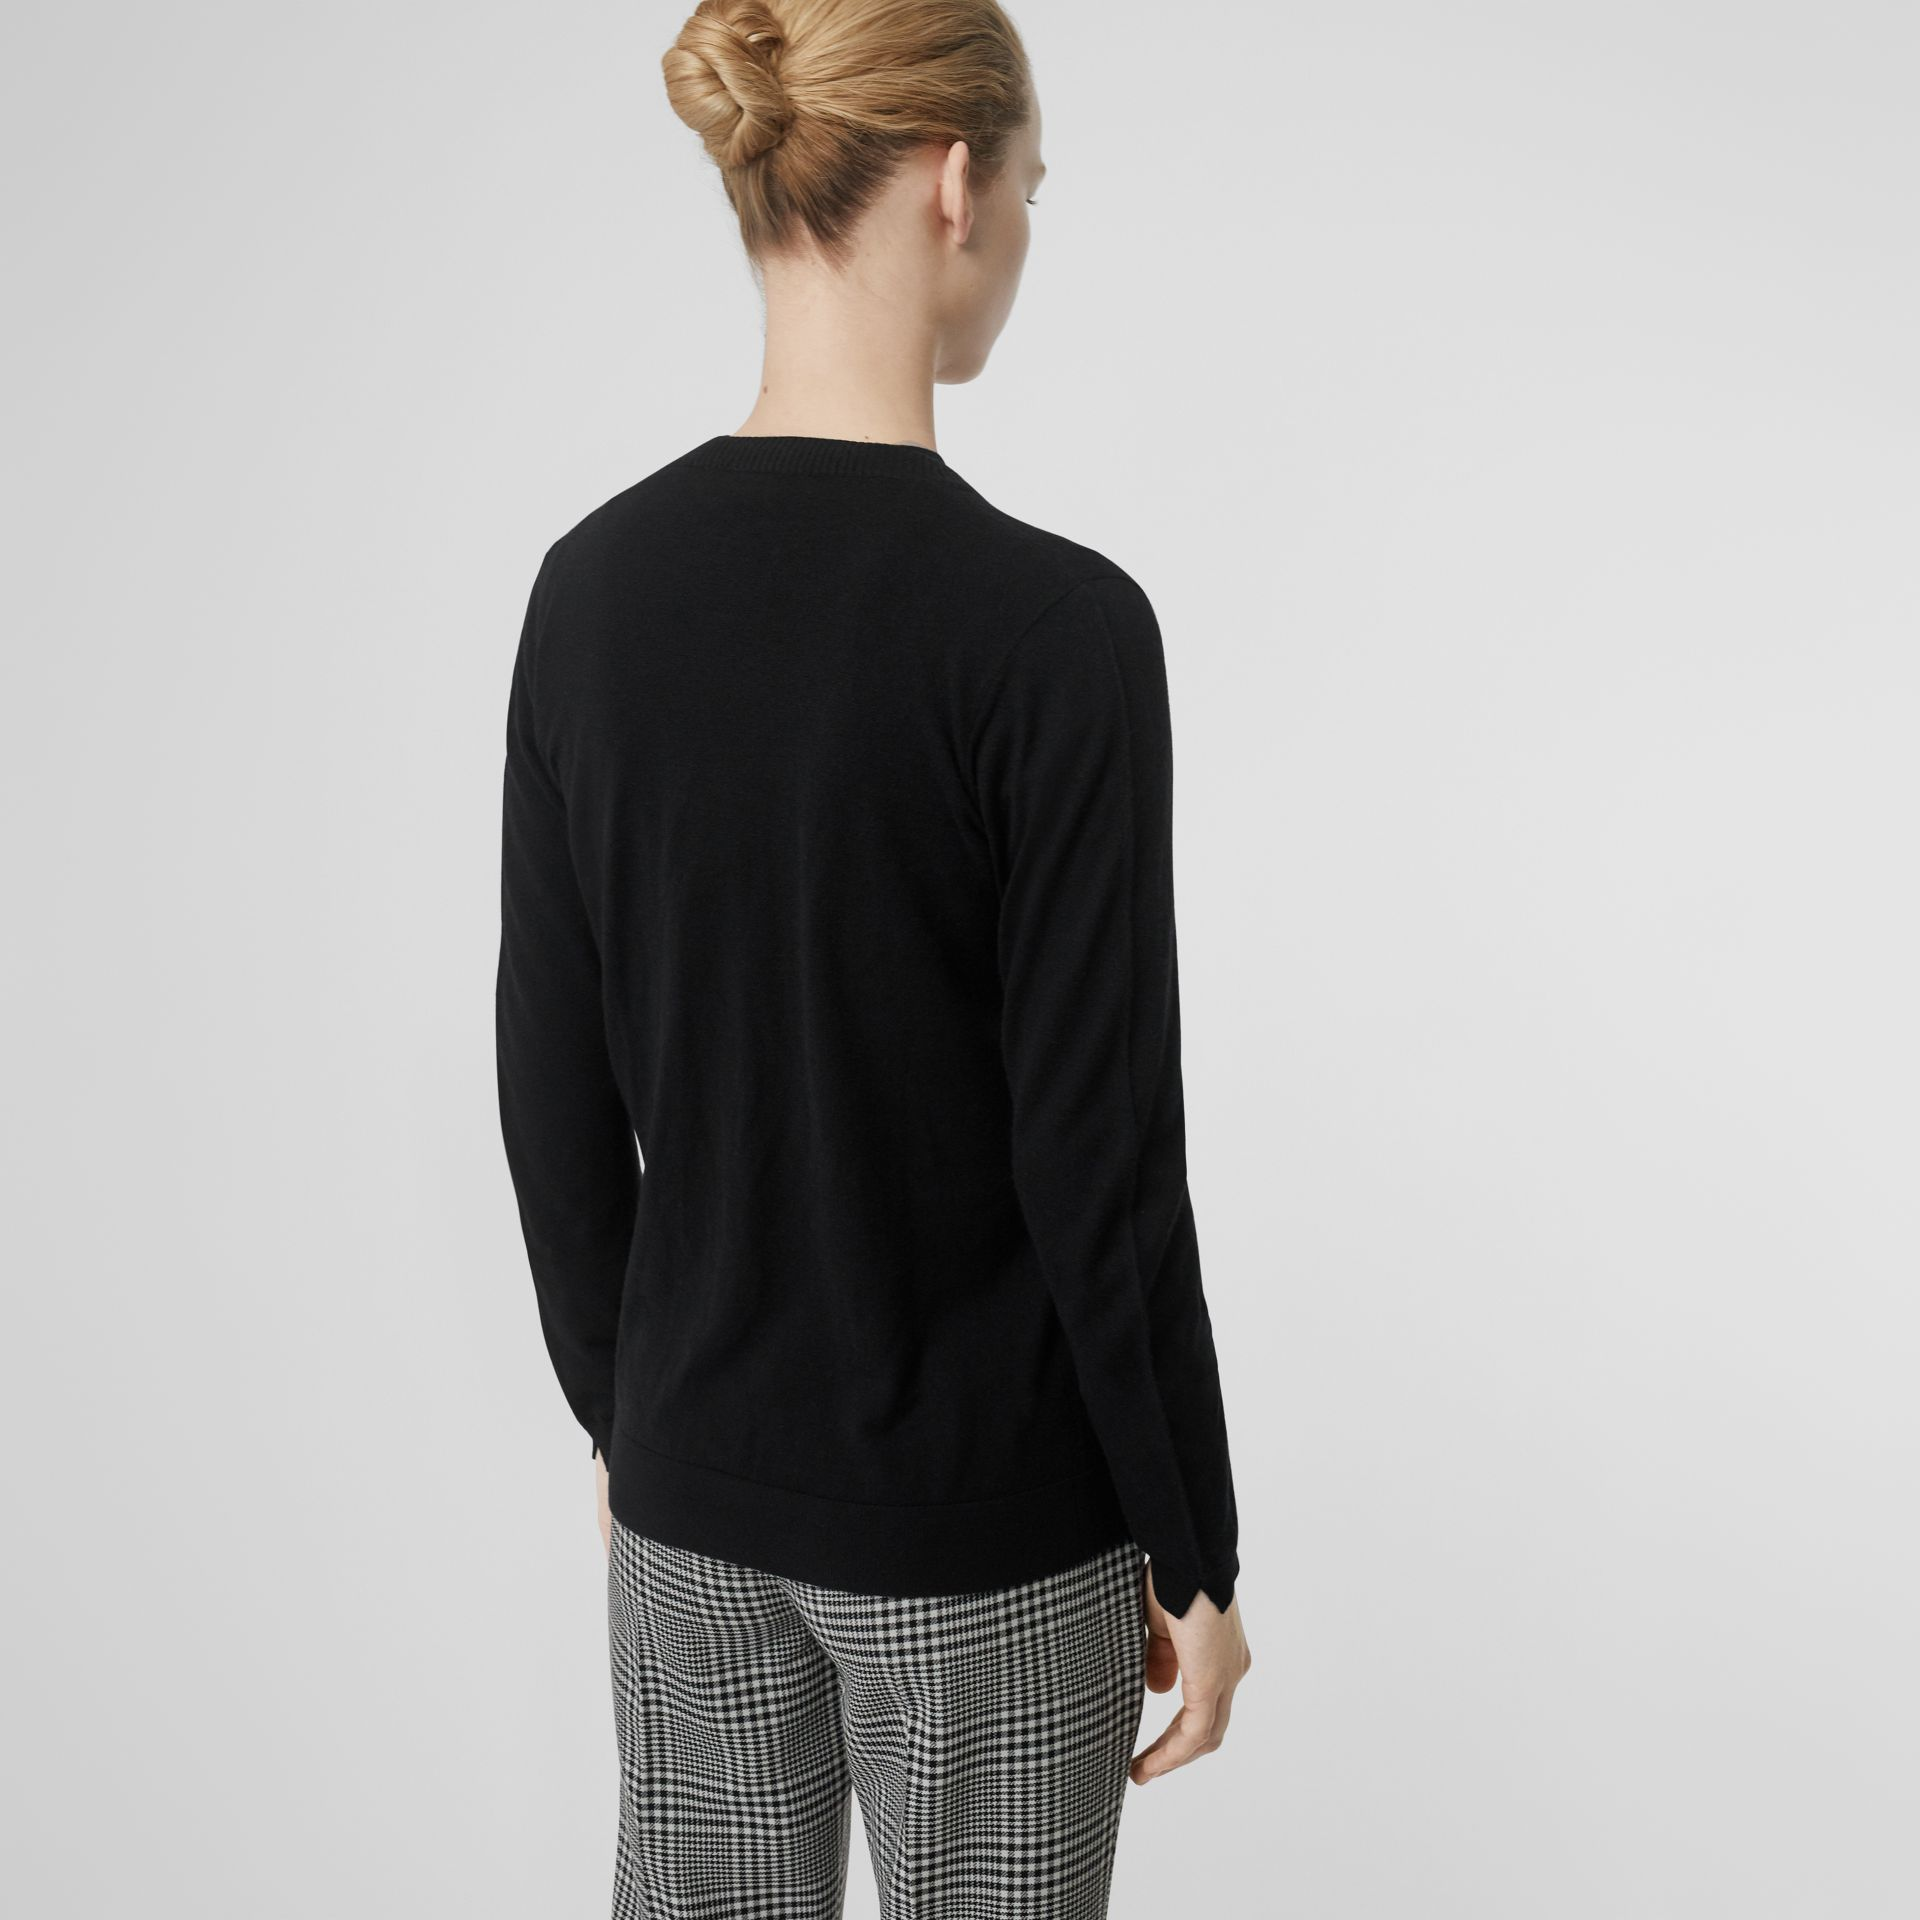 Rib Knit Cashmere Cardigan in Black - Women | Burberry - gallery image 2